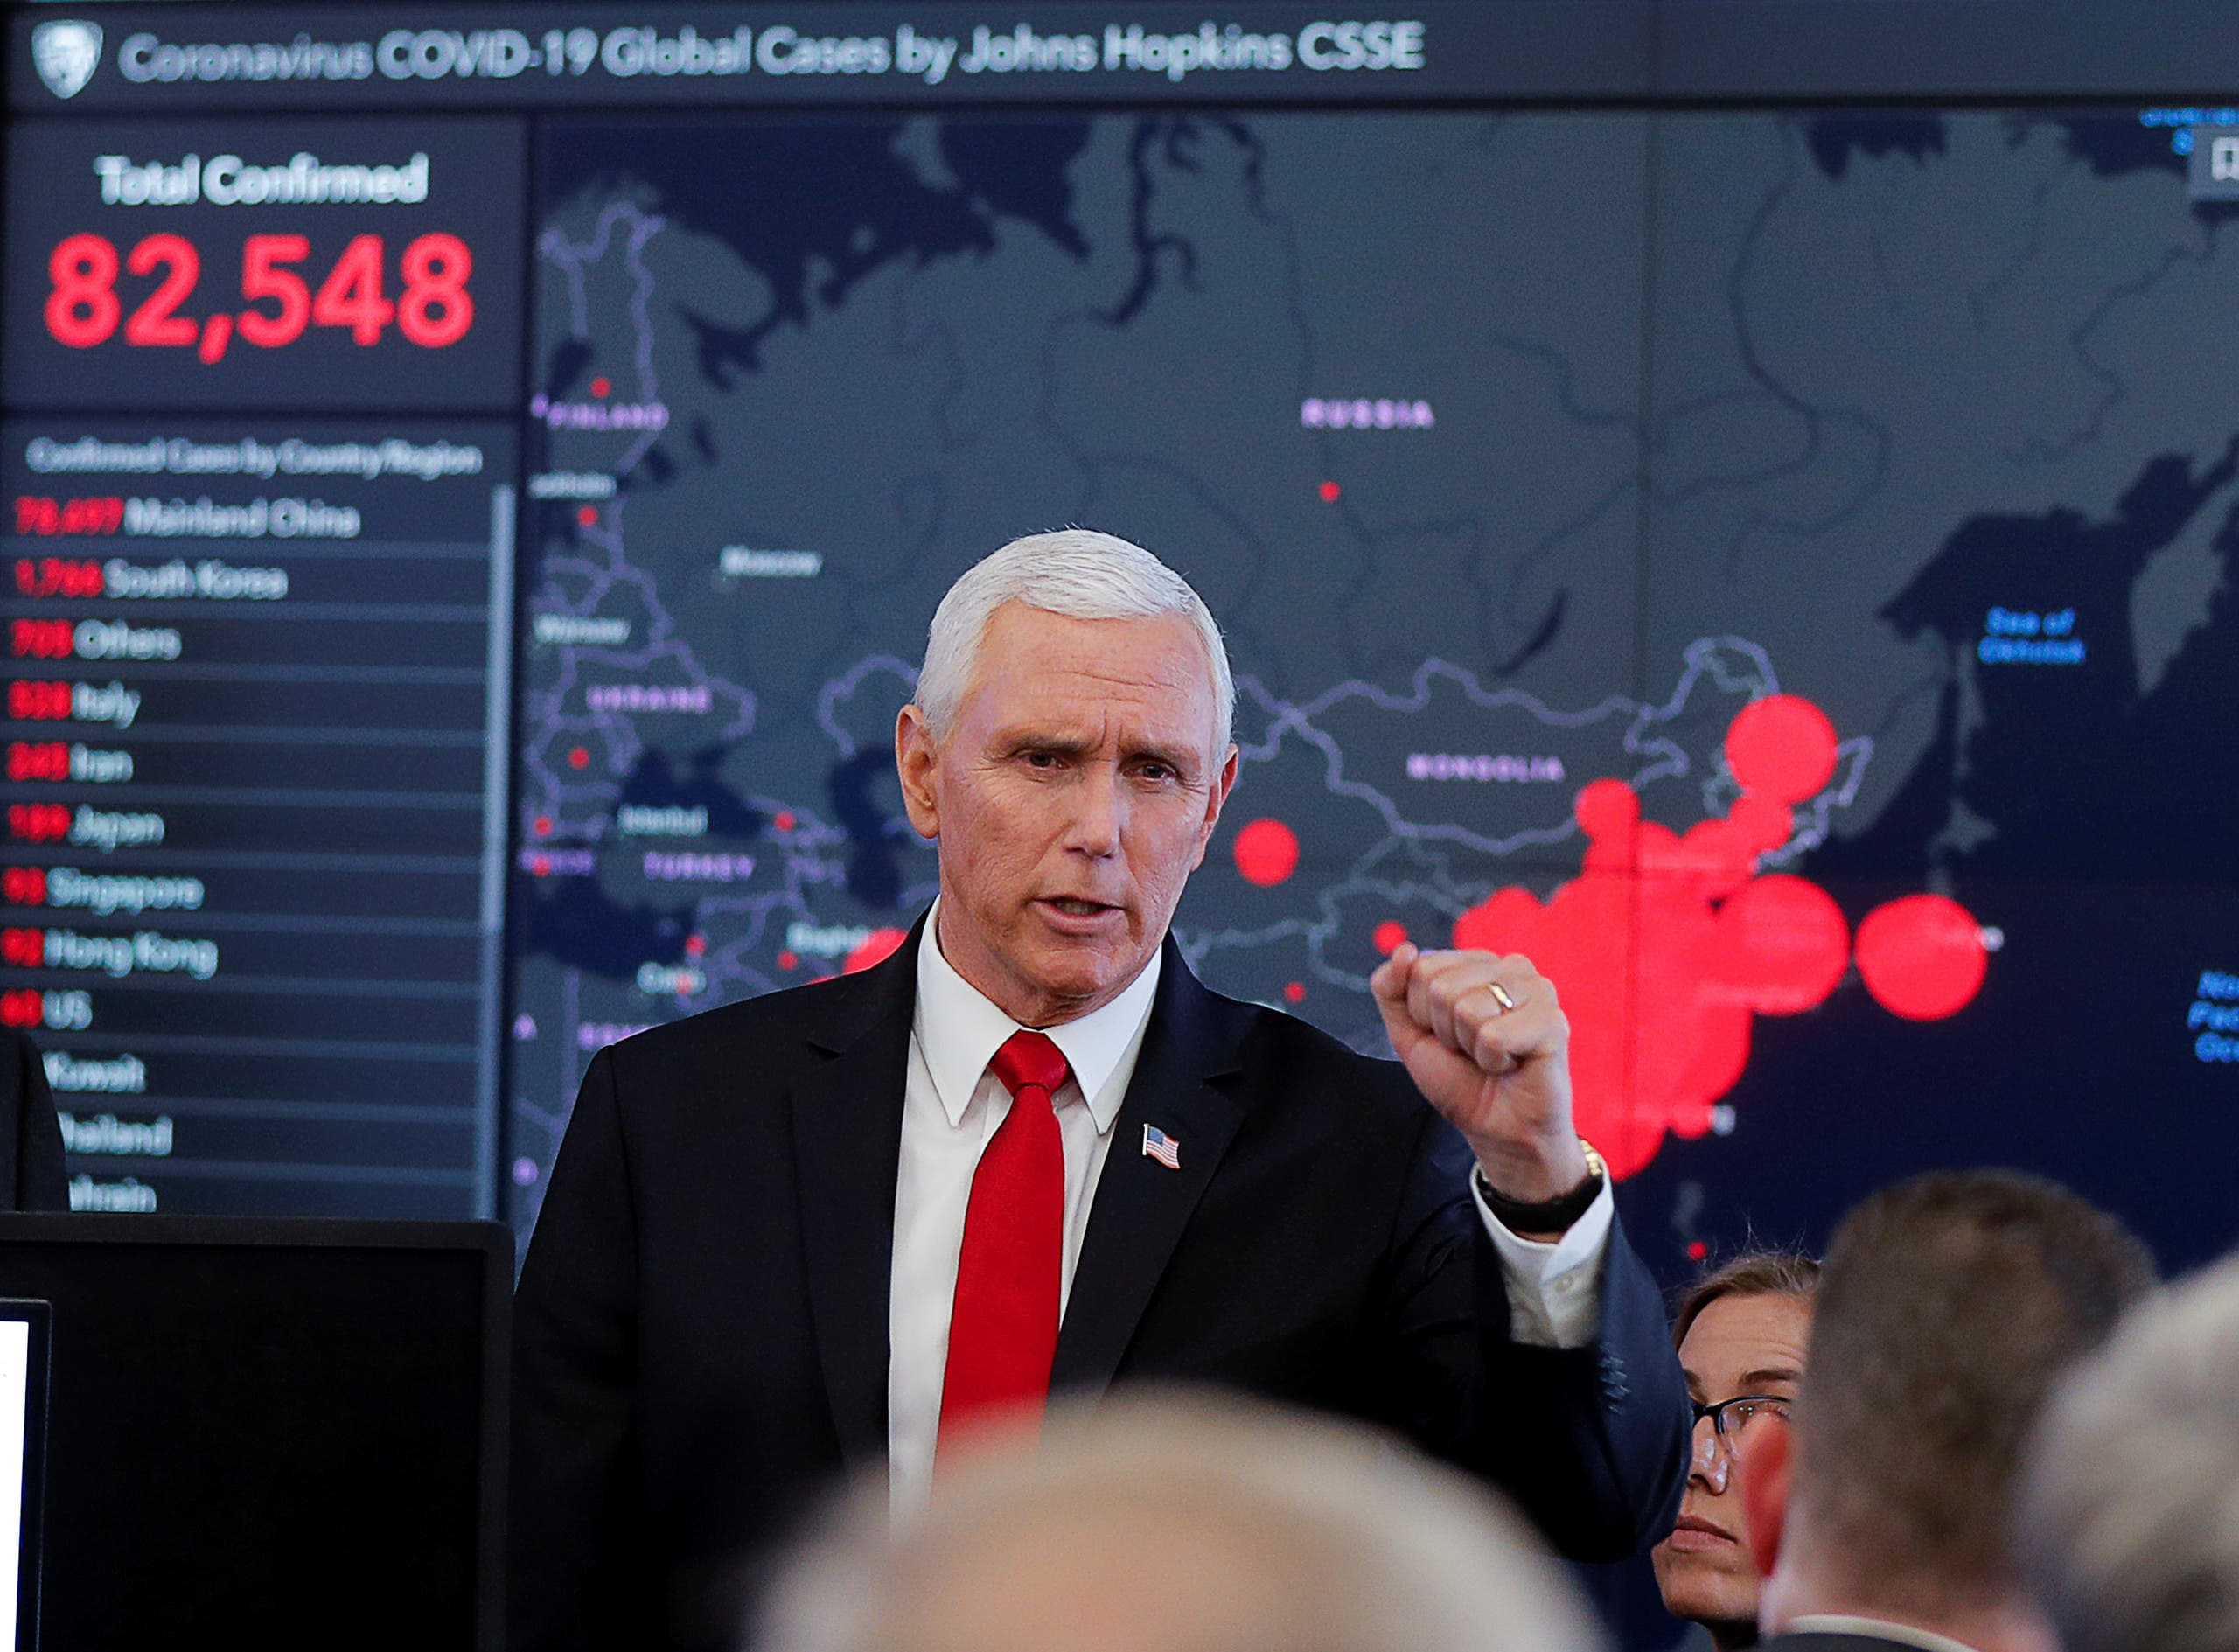 US Vice President Mike Pence speaks during a tour of the secretary's operation center following a coronavirus task force meeting at the Department of Health and Human Services (HHS) in Washington, US, February 27, 2020. (File photo: Reuters)